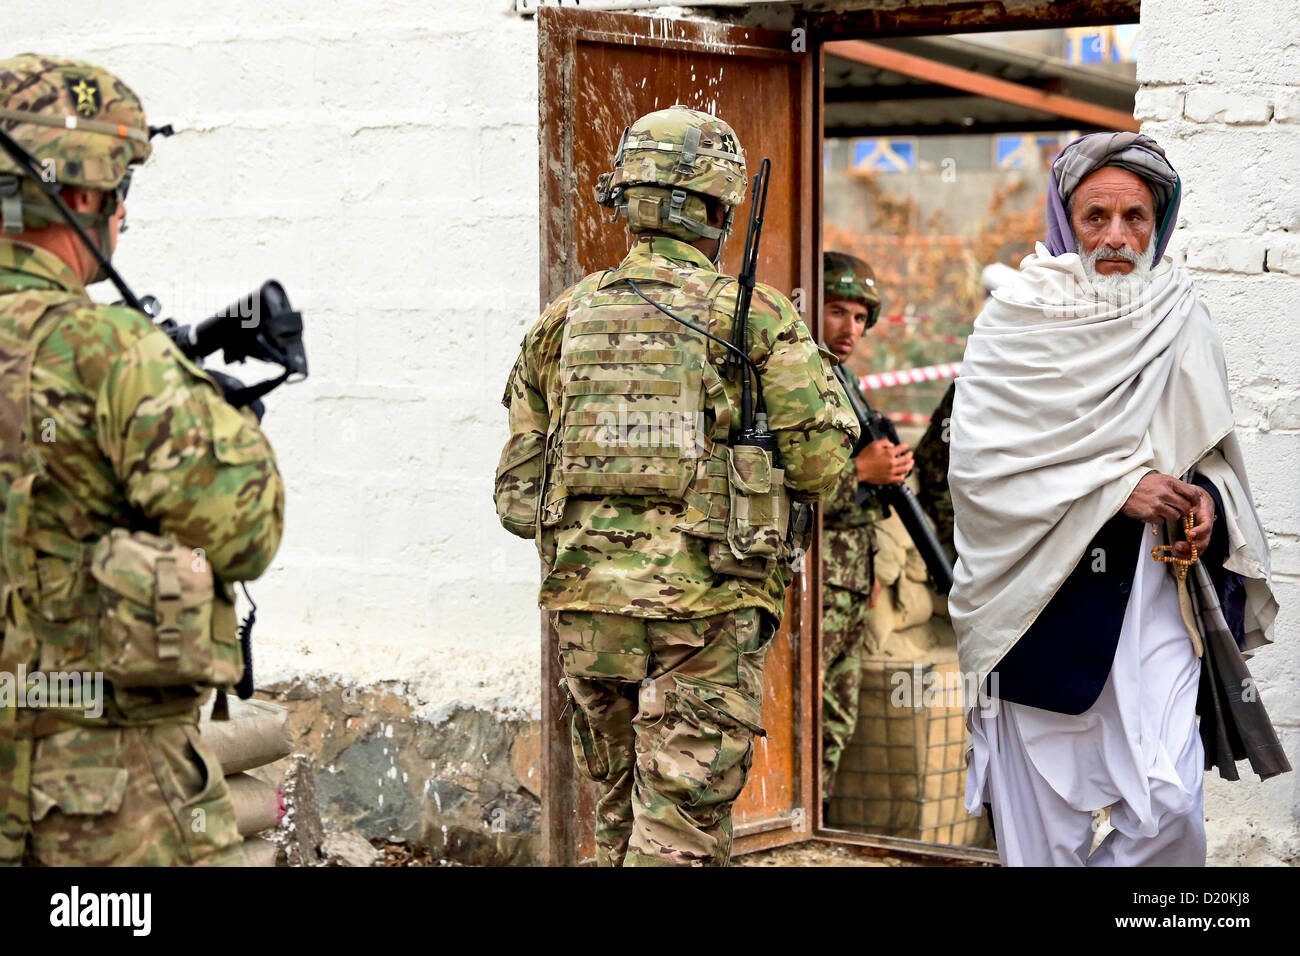 US Army forces pass an Afghan man during a patrol January 8, 2013 in Farah City, Afghanistan. - Stock Image